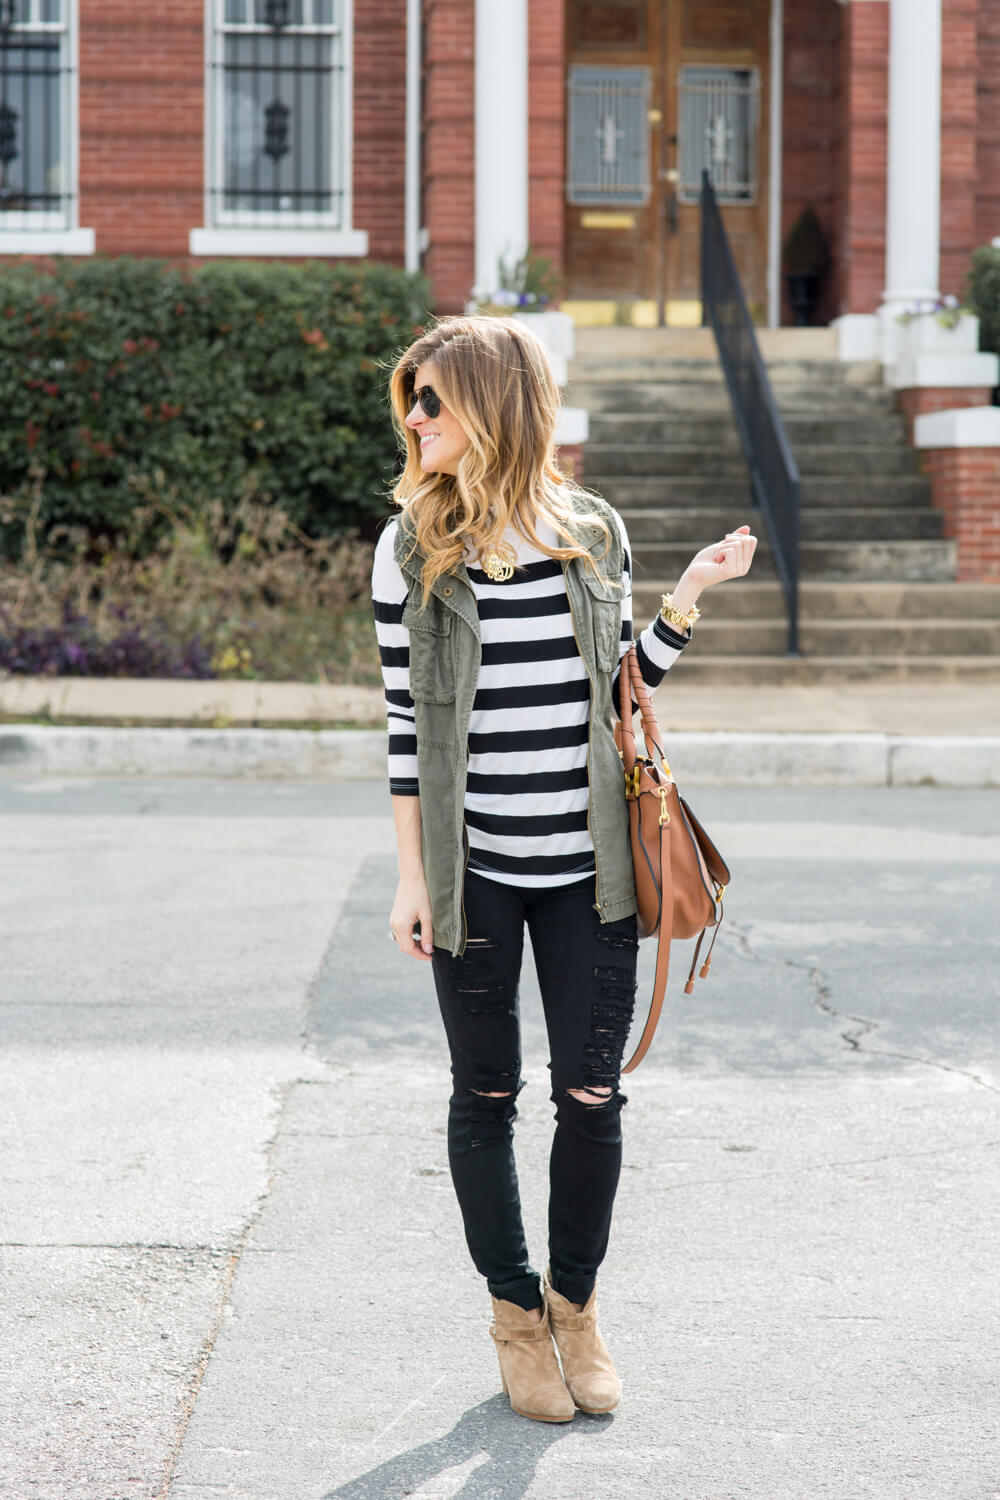 5c72a8ede65 What to wear with black jeans - 30+ Black Jeans Outfit Ideas